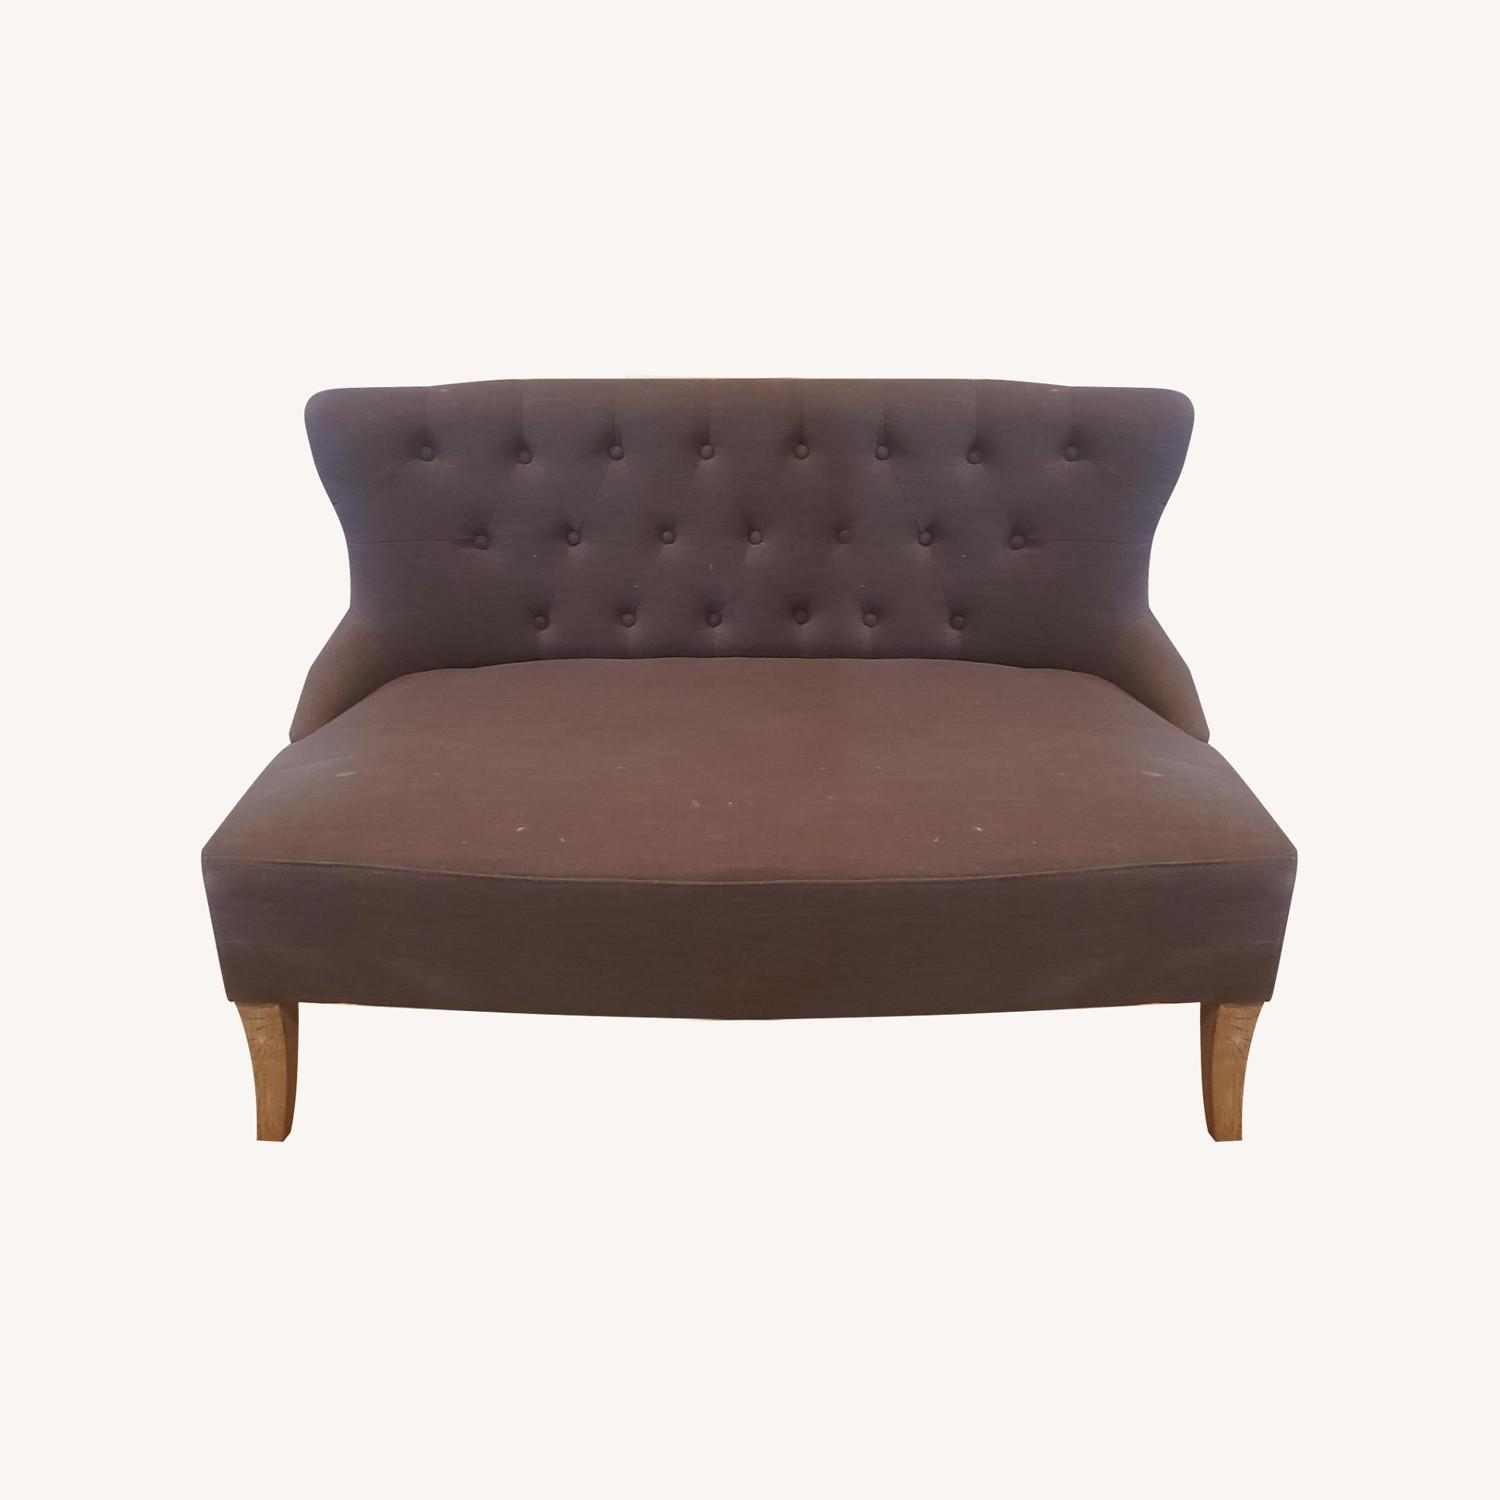 Jayson Home Fabric Loveseat - image-0